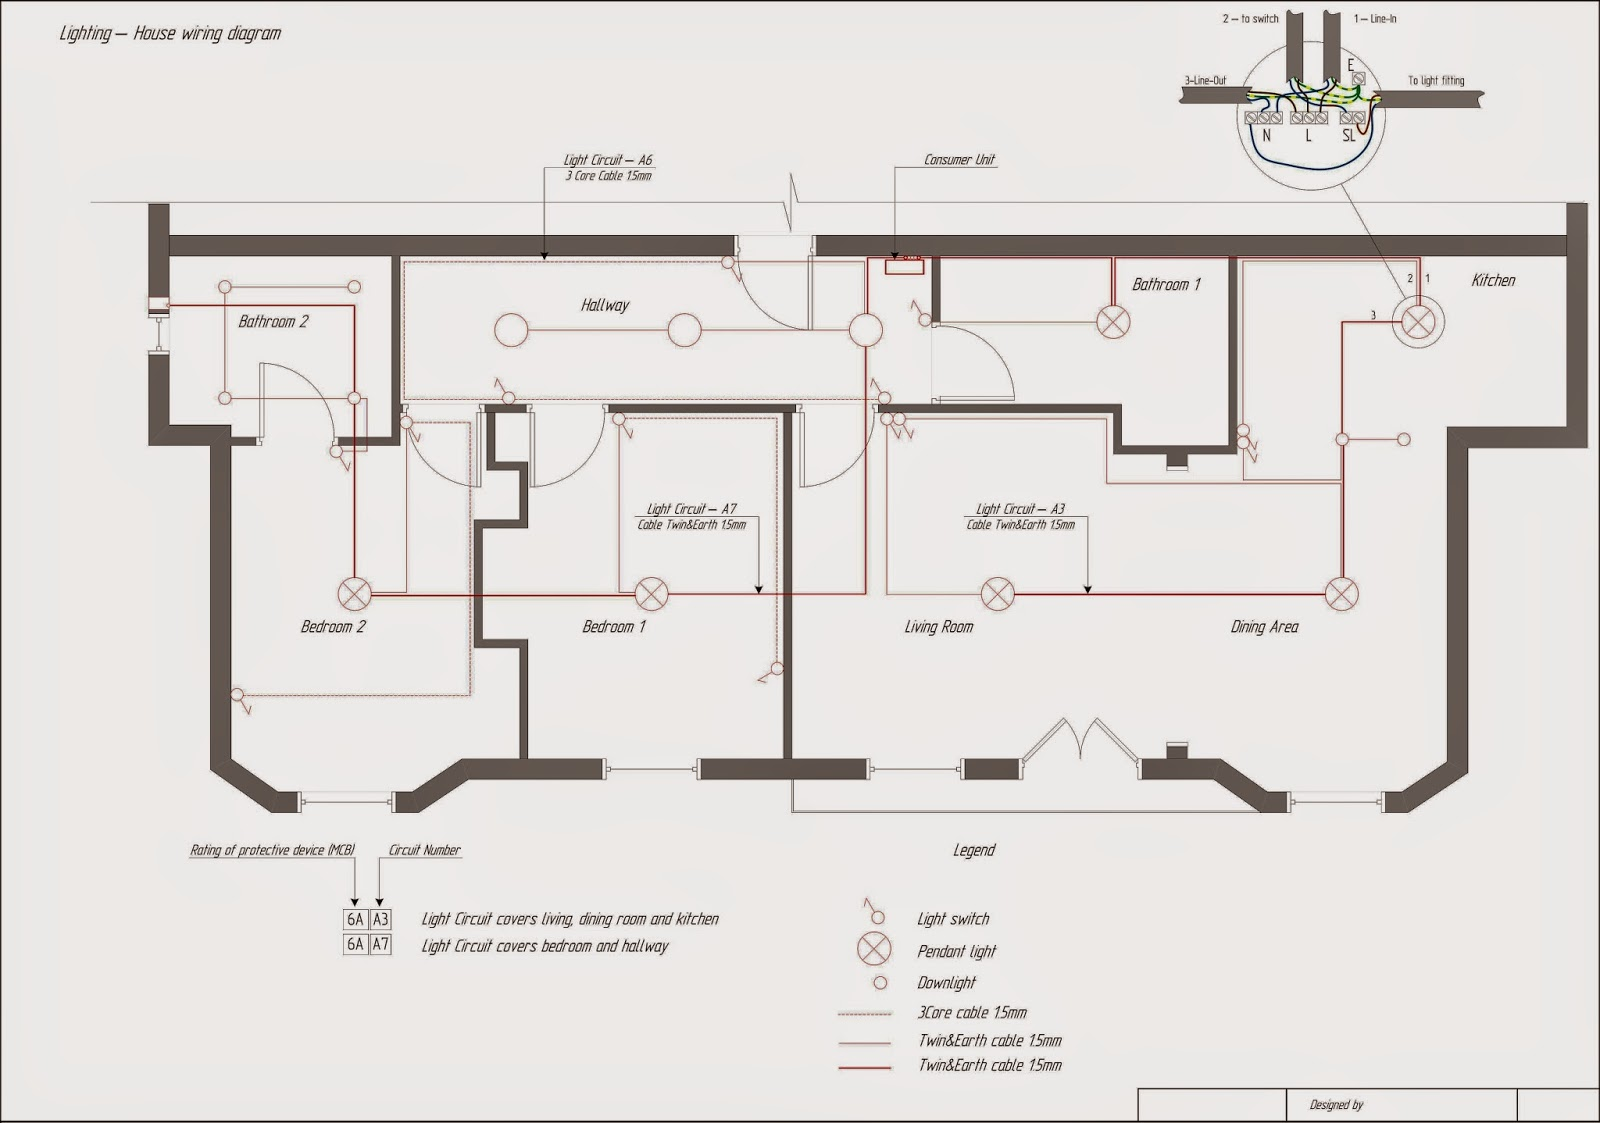 house wiring diagram | owner and manual house wiring diagram with elcb #4